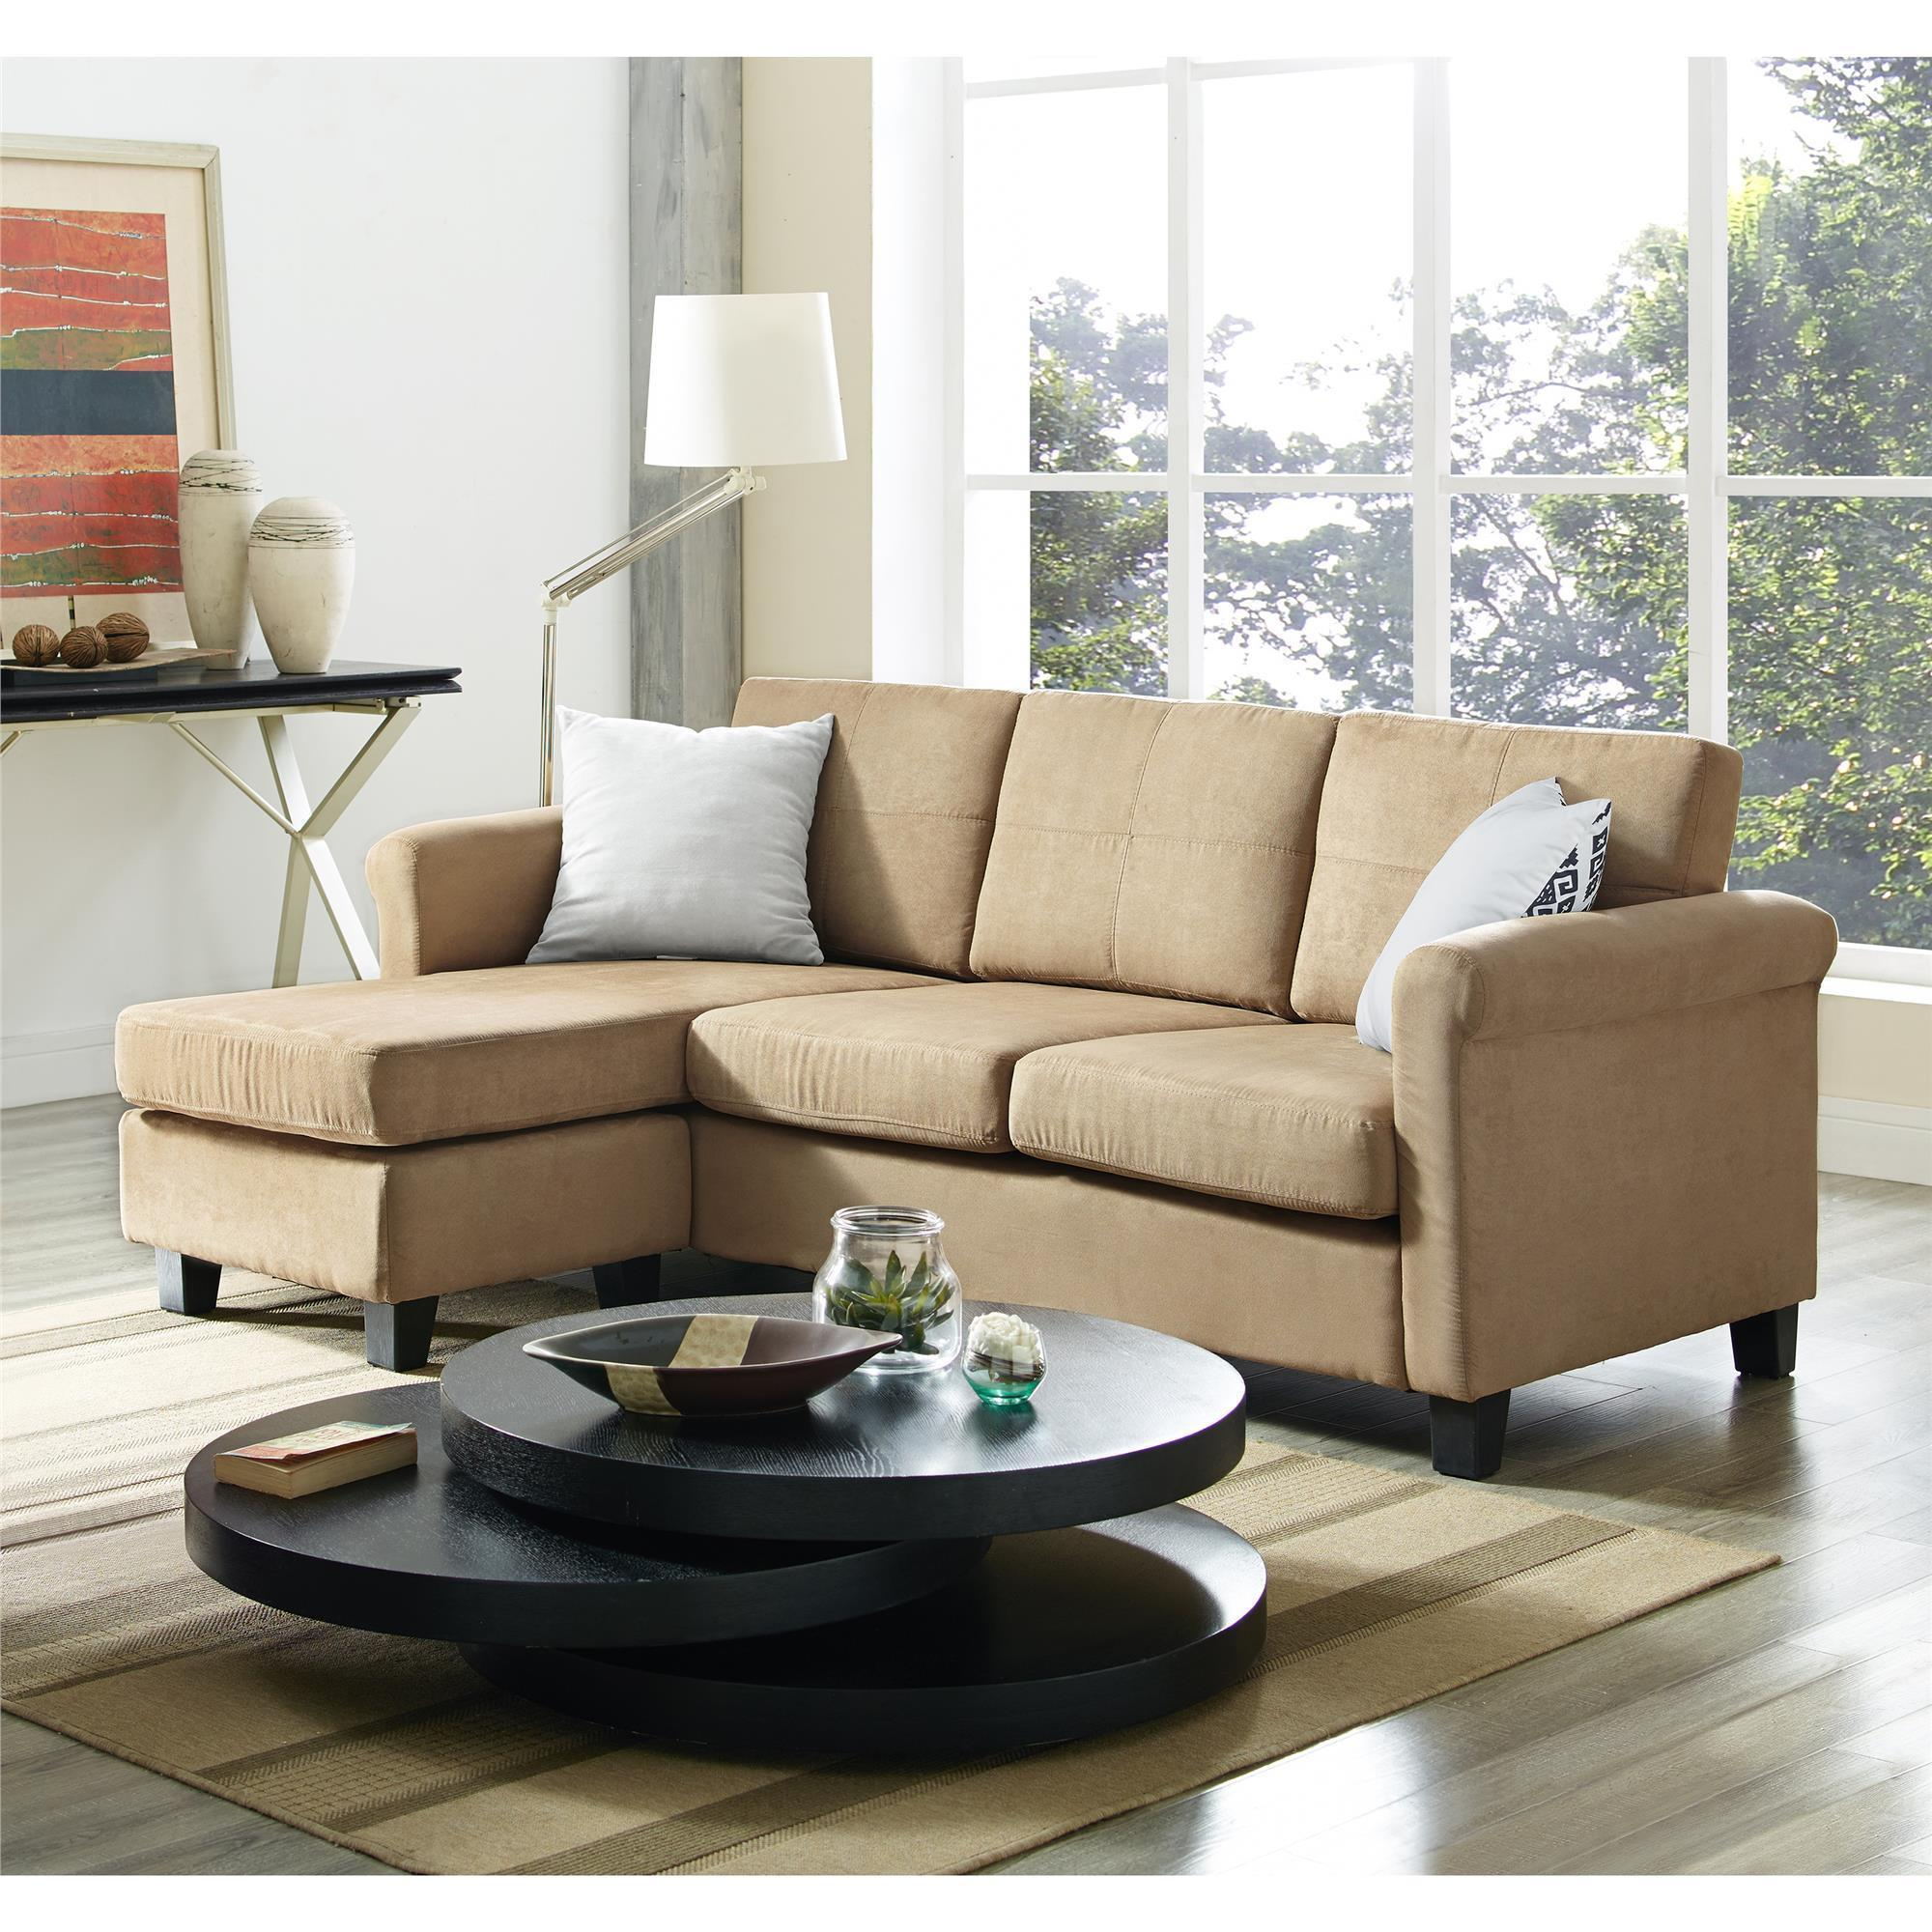 Beau Dorel Living Small Spaces Microfiber/ Faux Leather Configurable Sectional  Sofa